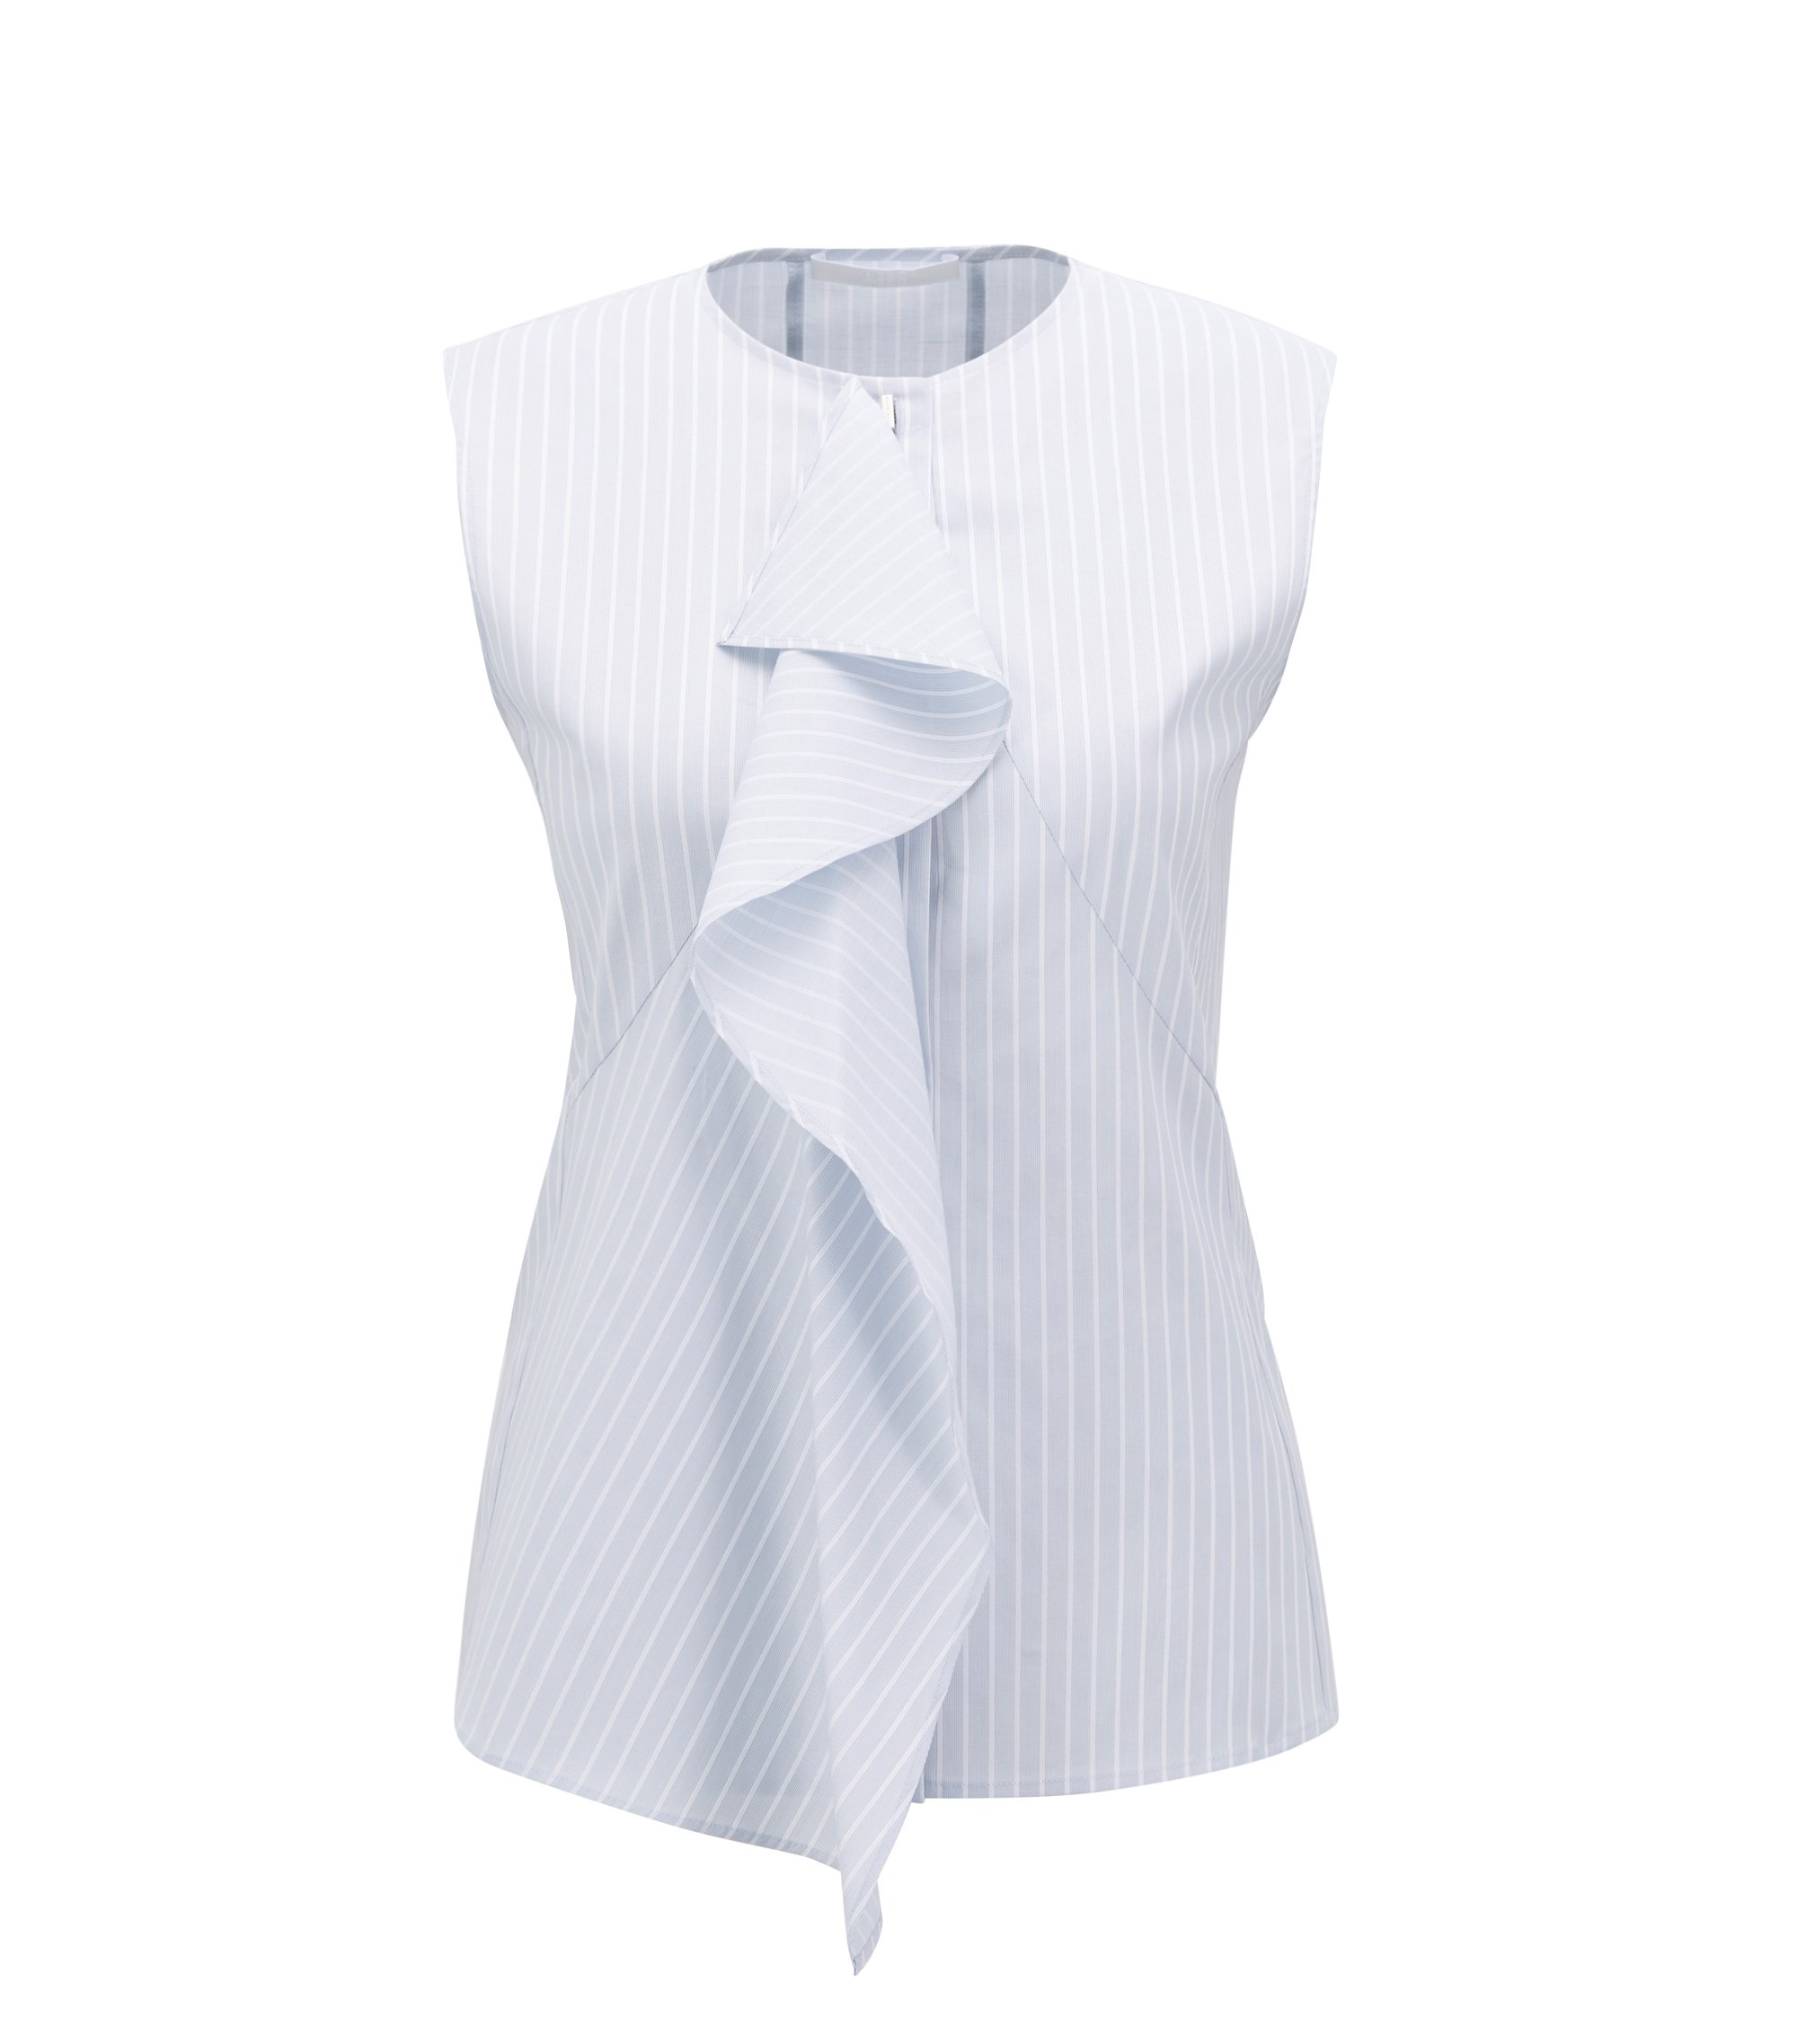 Slim-fit sleeveless blouse in stretch cotton, Patterned